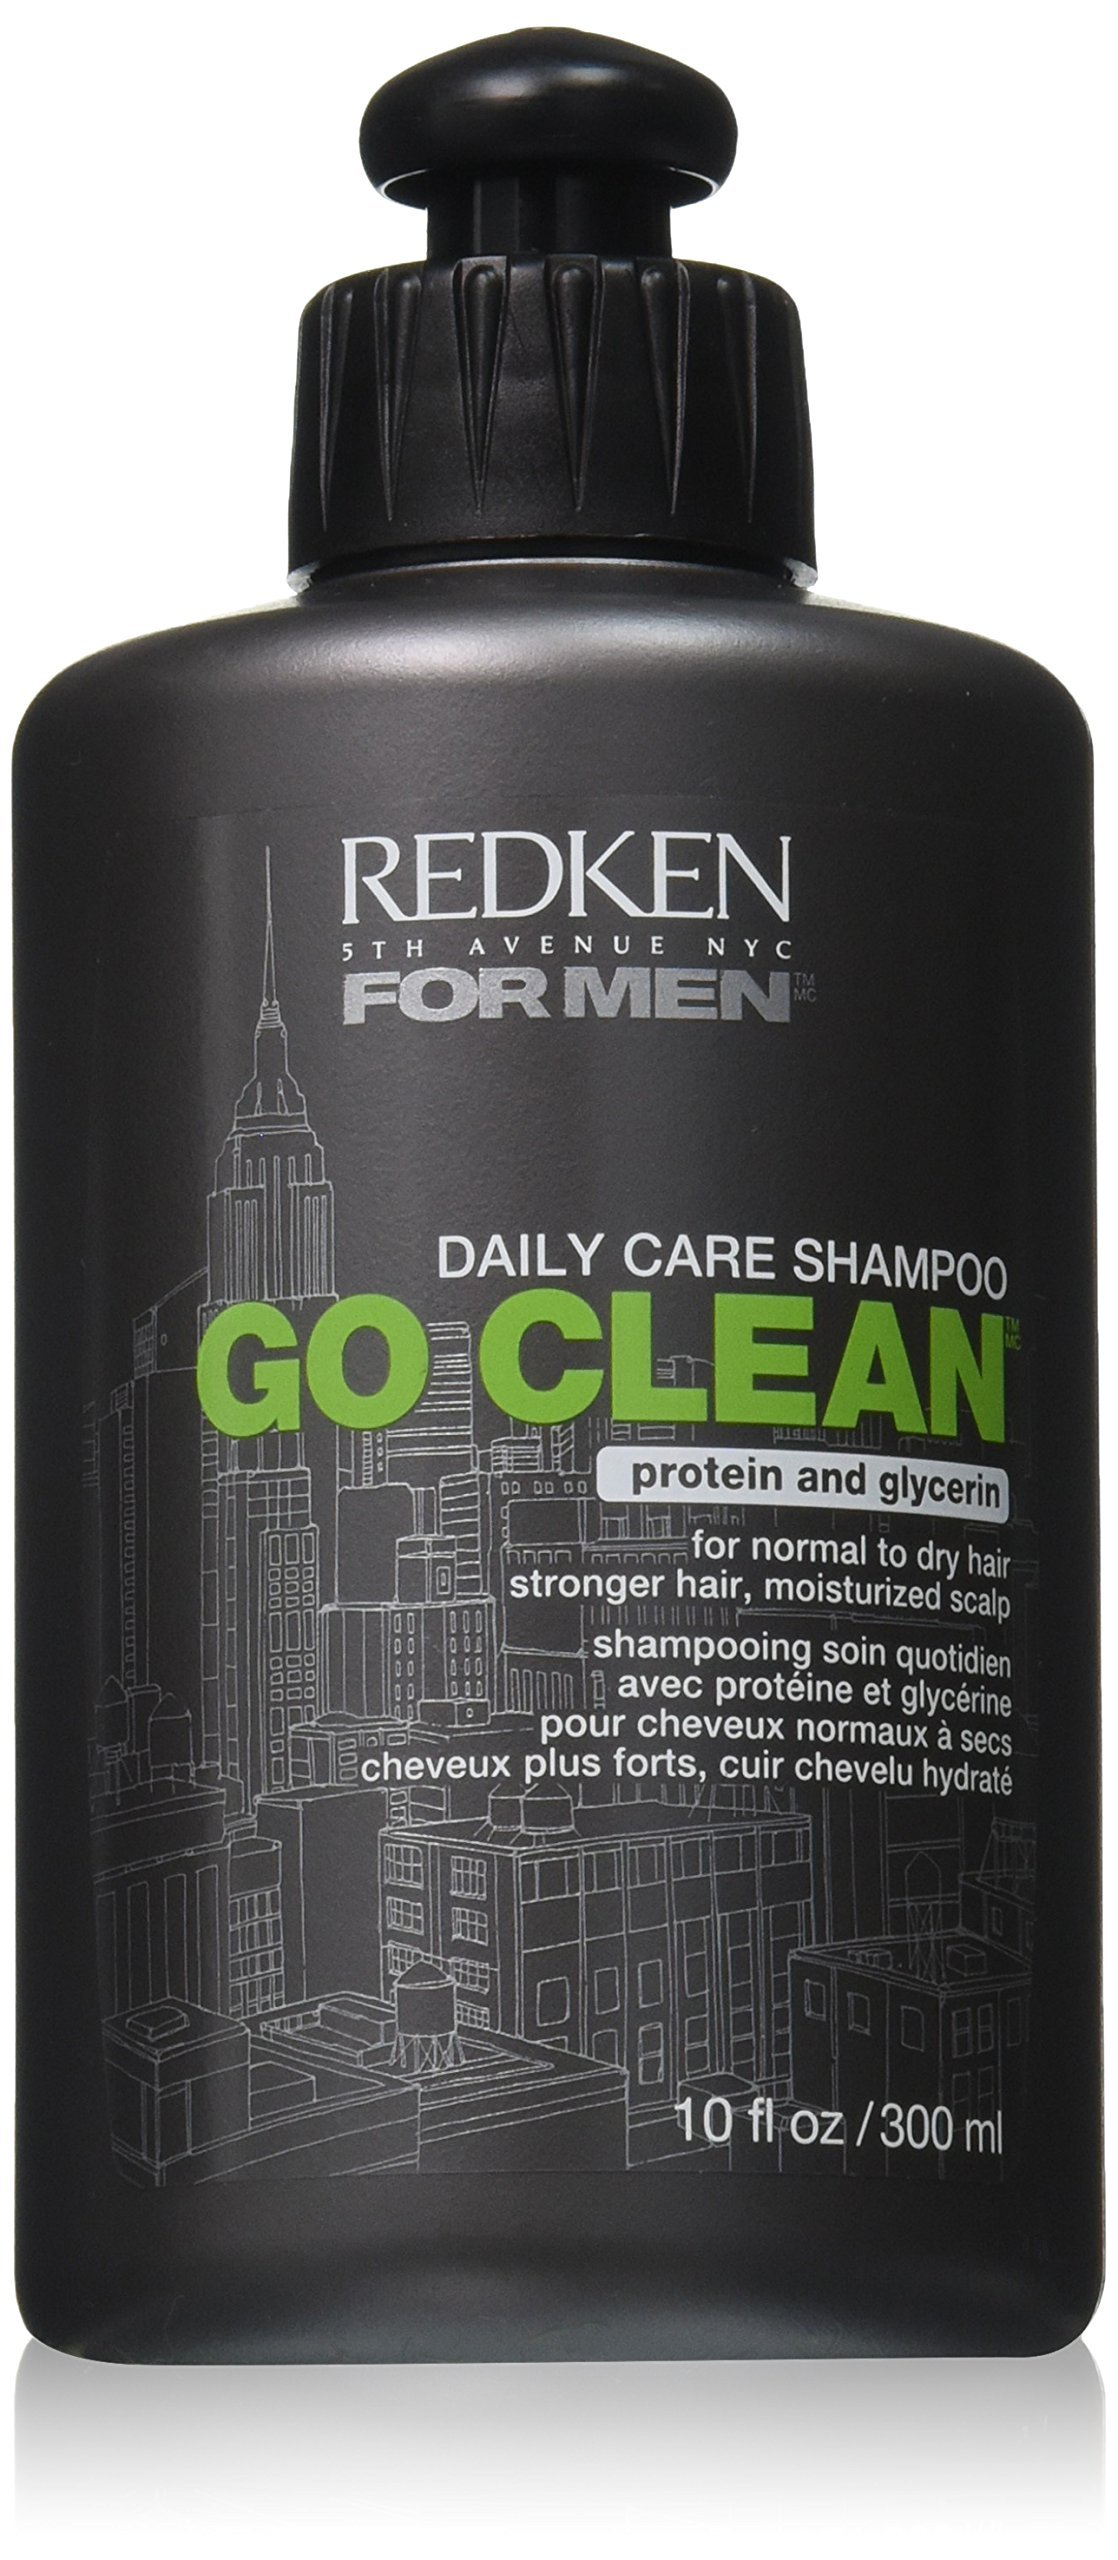 Redken Men Go Clean Shampoo, 10 Fluid Ounce by REDKEN